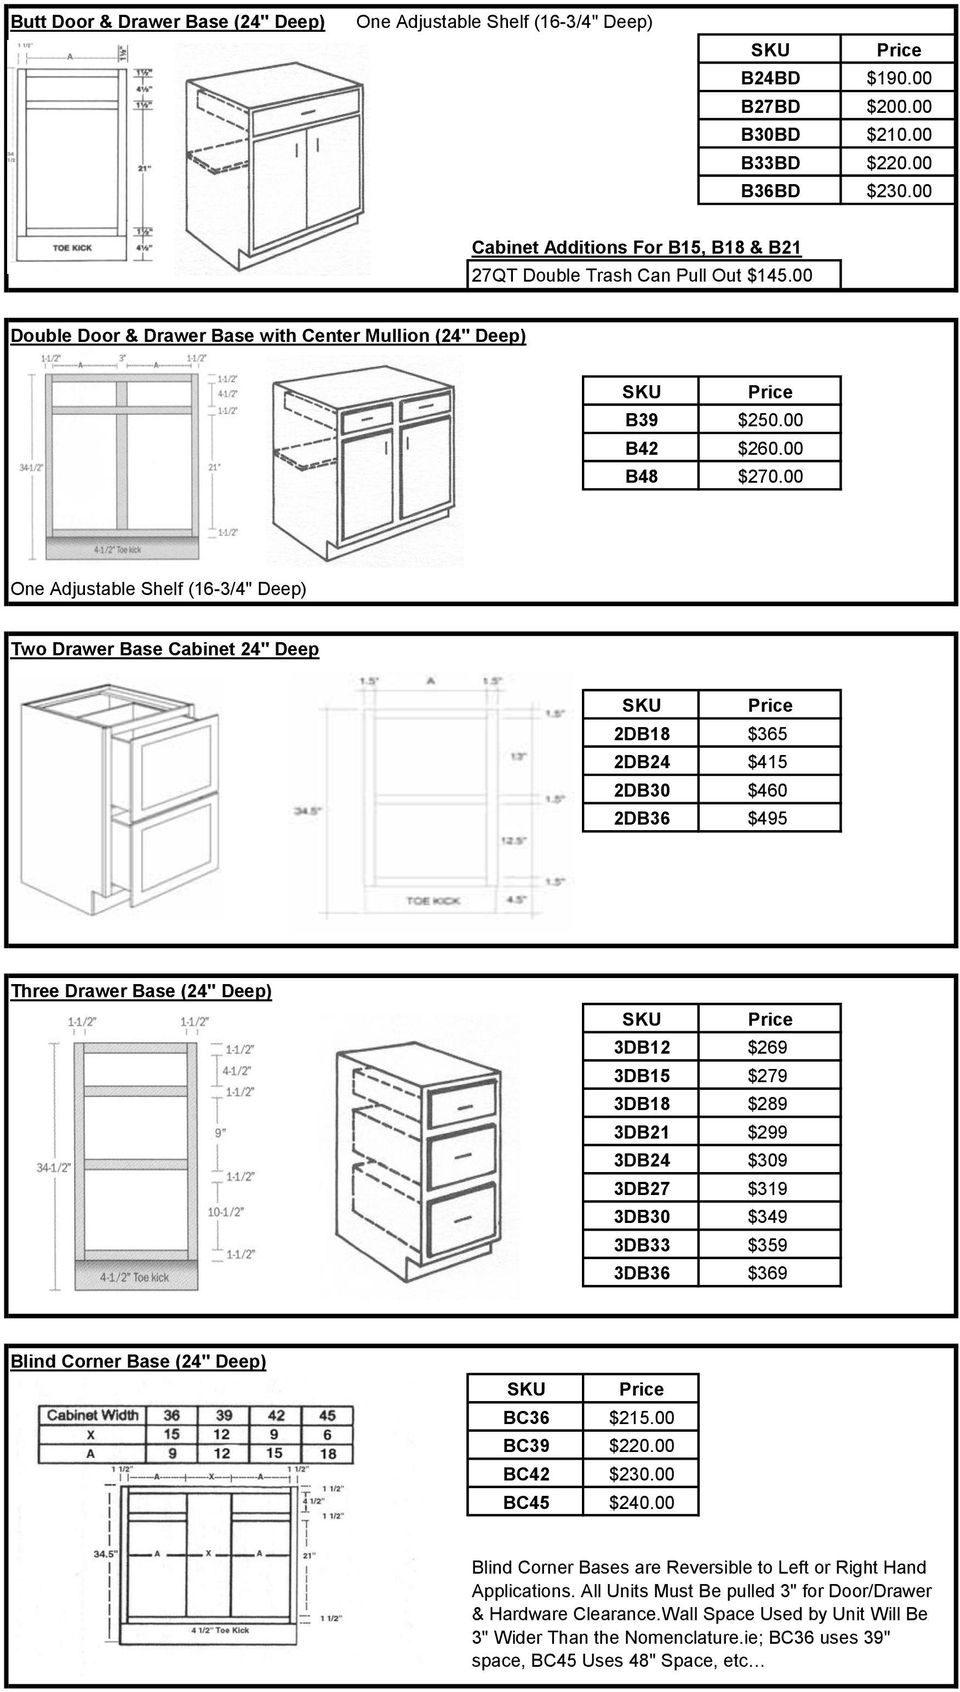 "00 One Adjustable Shelf (16-3/4"" Deep) Two Drawer Base Cabinet 24"" Deep 2DB18 $365 2DB24 $415 2DB30 $460 2DB36 $495 Three Drawer Base (24"" Deep) 3DB12 $269 3DB15 $279 3DB18 $289 3DB21 $299 3DB24 $309"